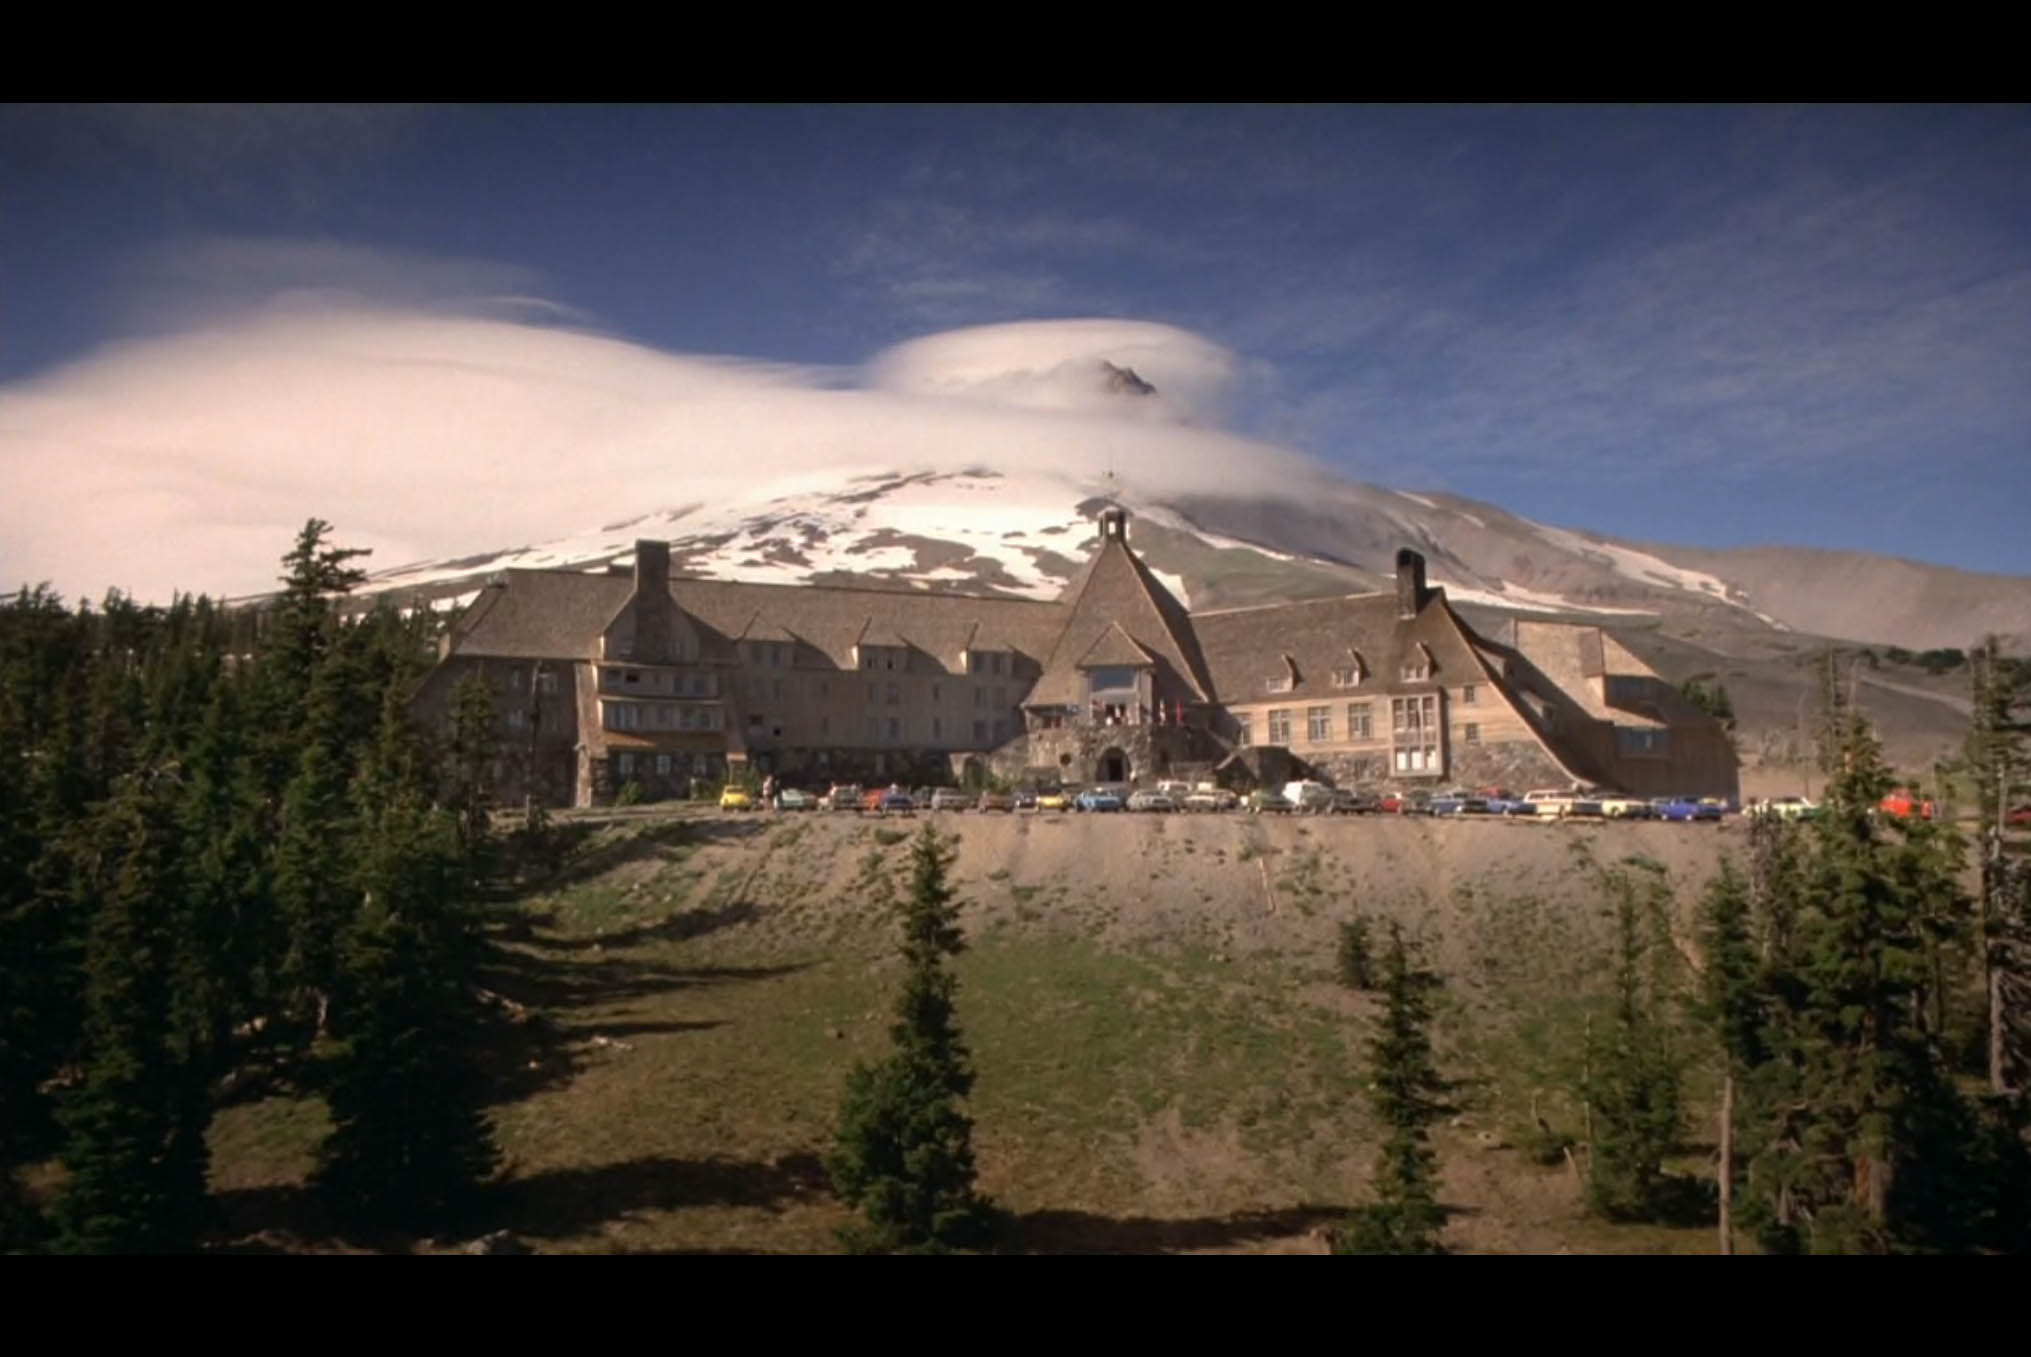 Screenshot from  The Shining  featuringthe Timberline Lodge inOregon which stands in for the exterior of The Overlook Hotel in the movie.